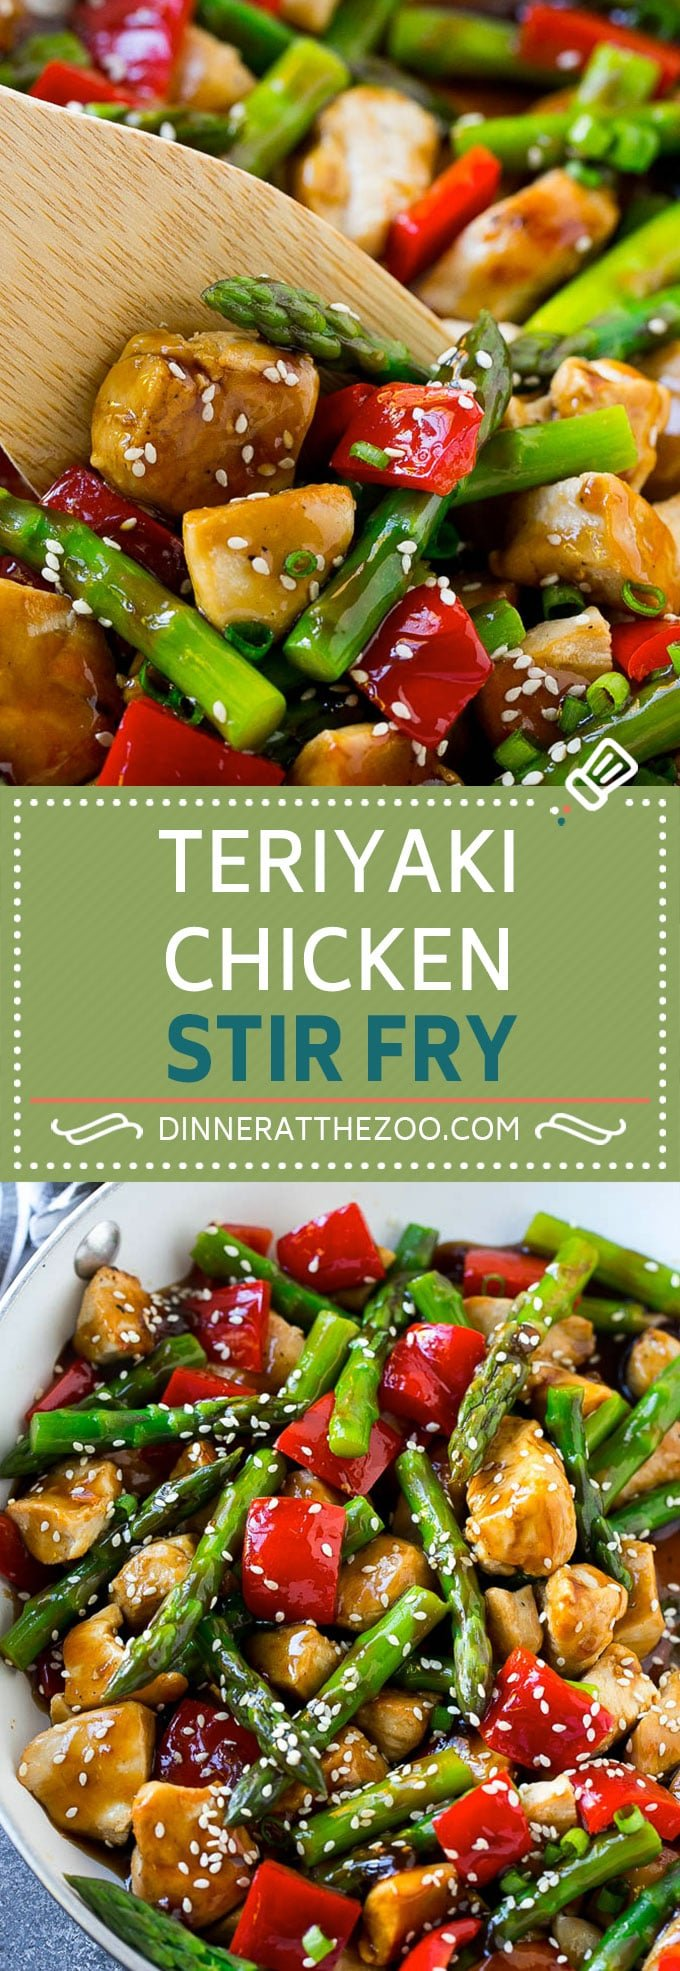 Teriyaki Chicken Stir Fry - Dinner At The Zoo-3487